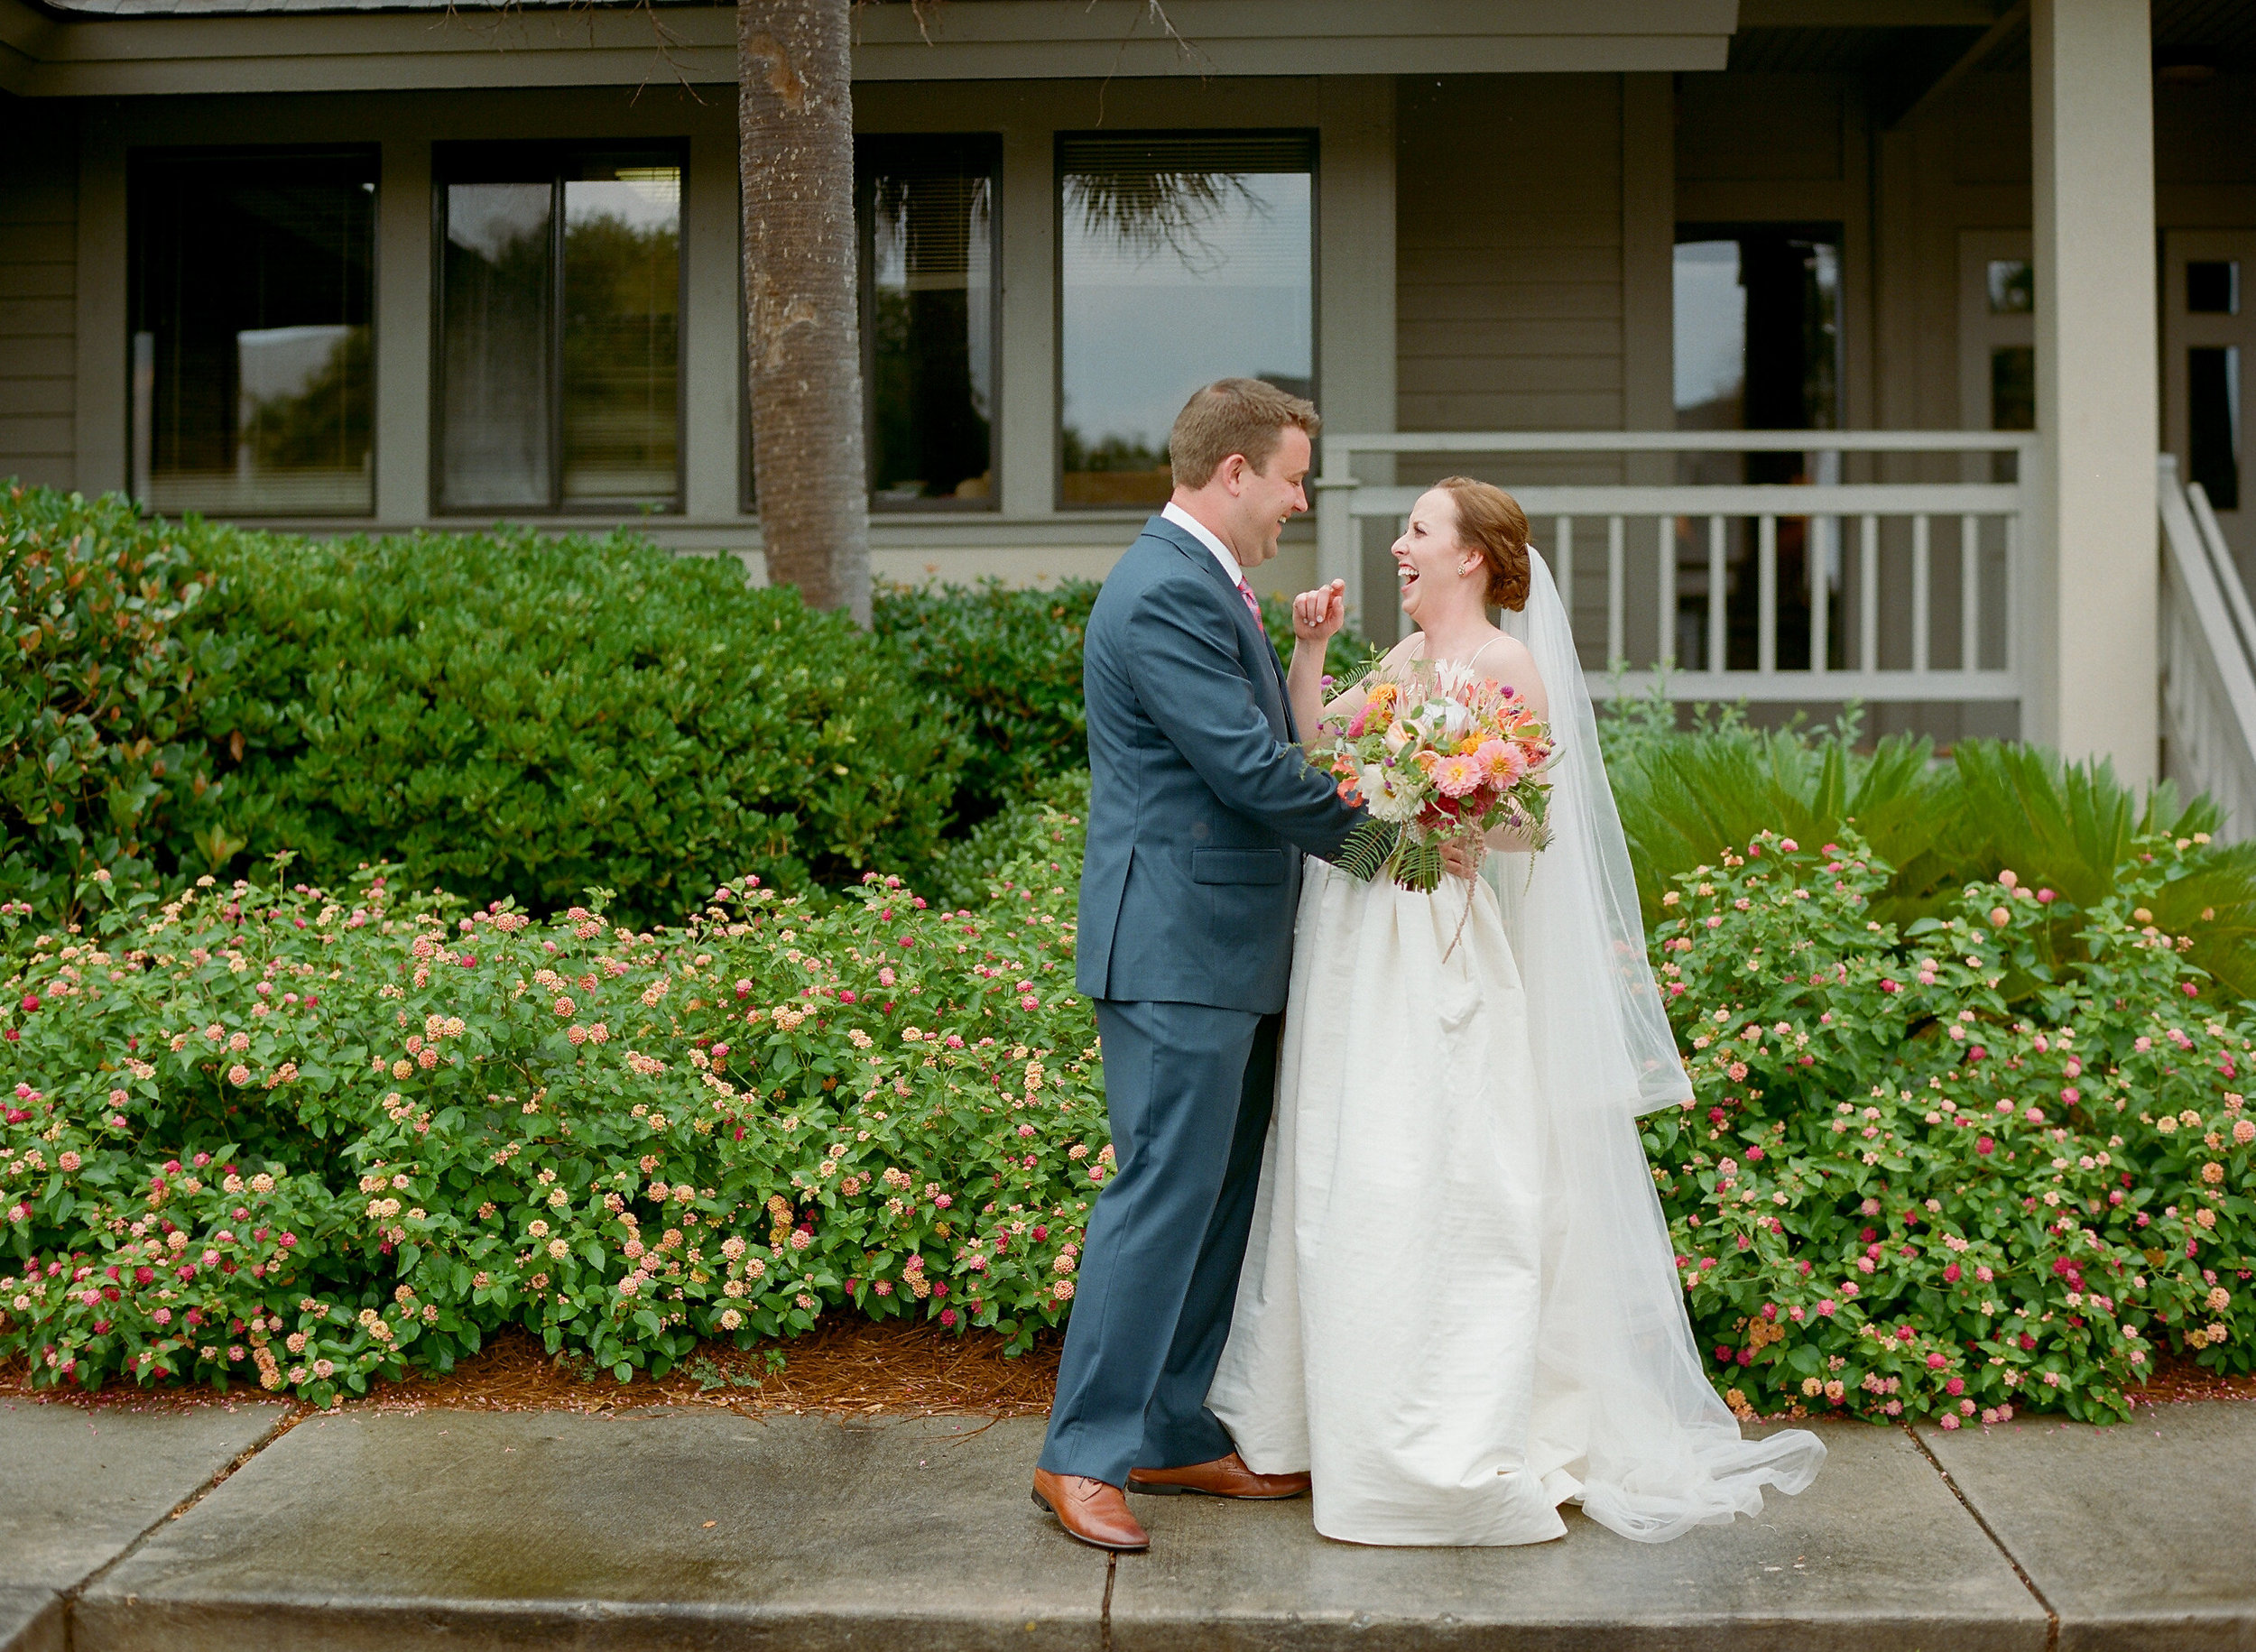 Citadel-Beach-House-Wedding-Charleston-Wedding-Photography-Lauren-Jonas2.jpg